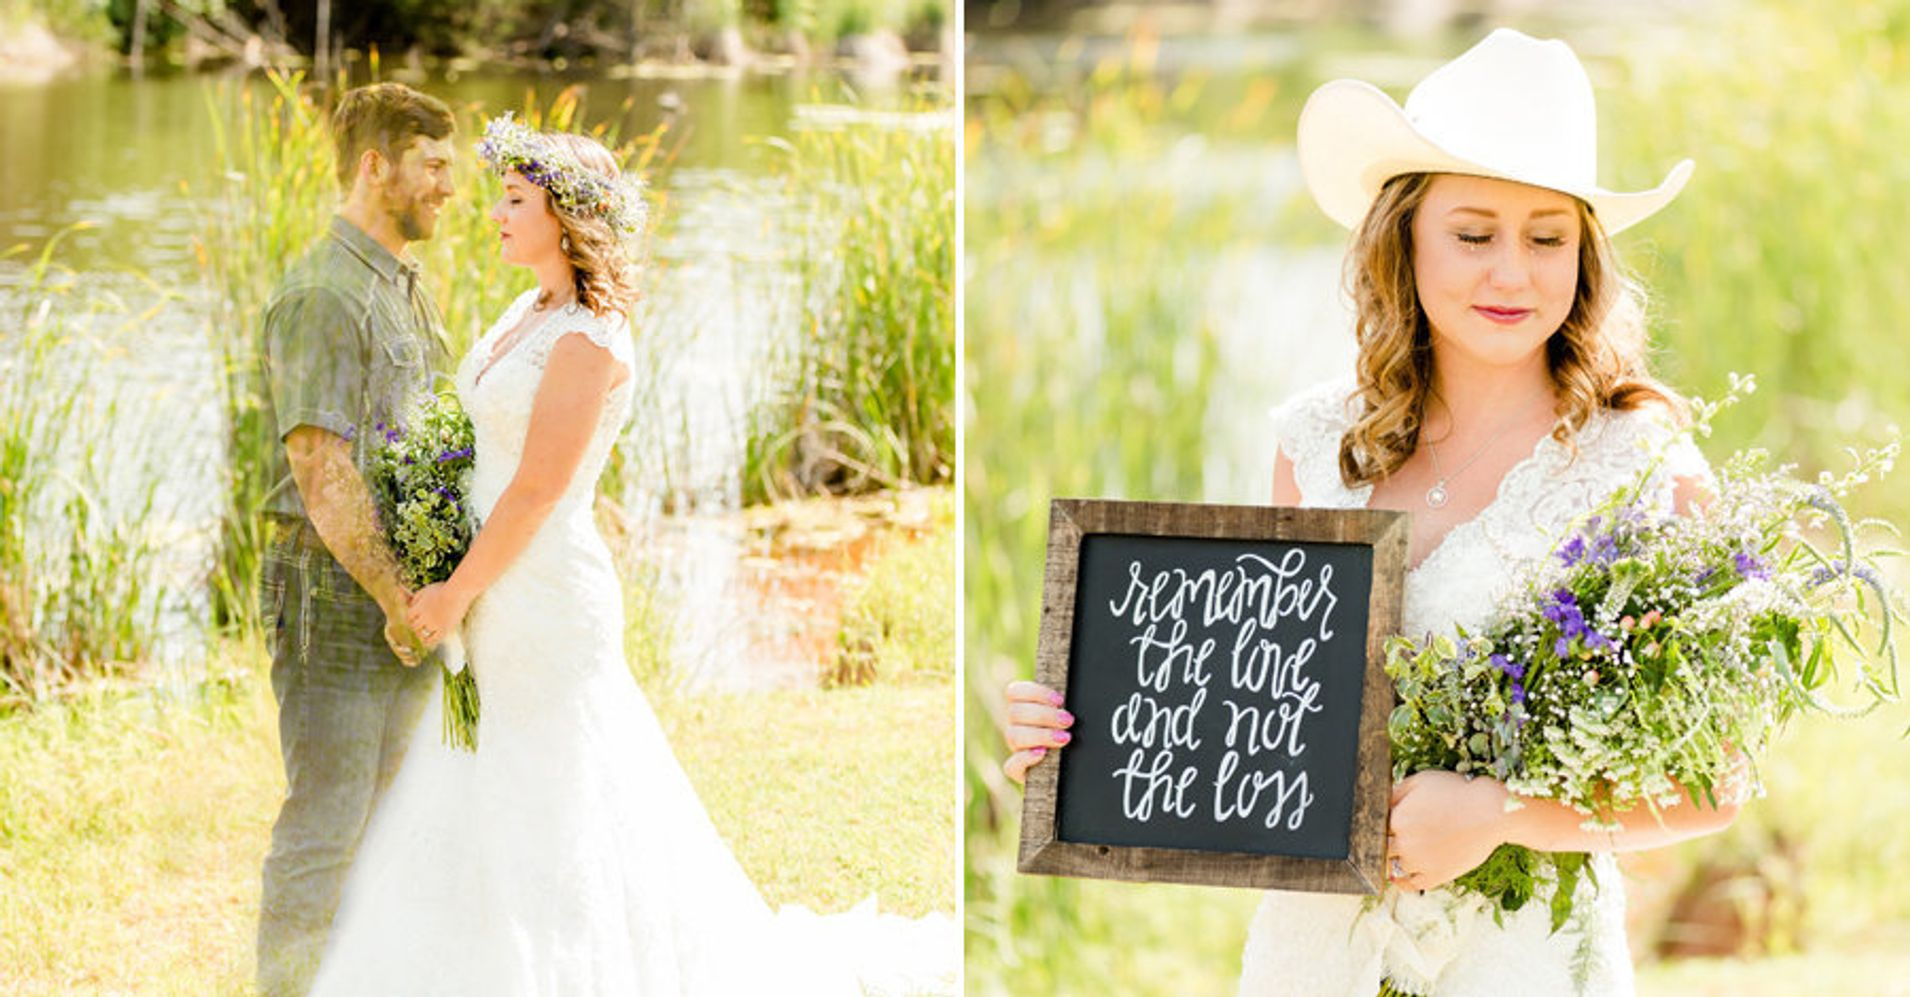 Grieving bride takes photos in wedding dress after fiance for Bride dress after wedding